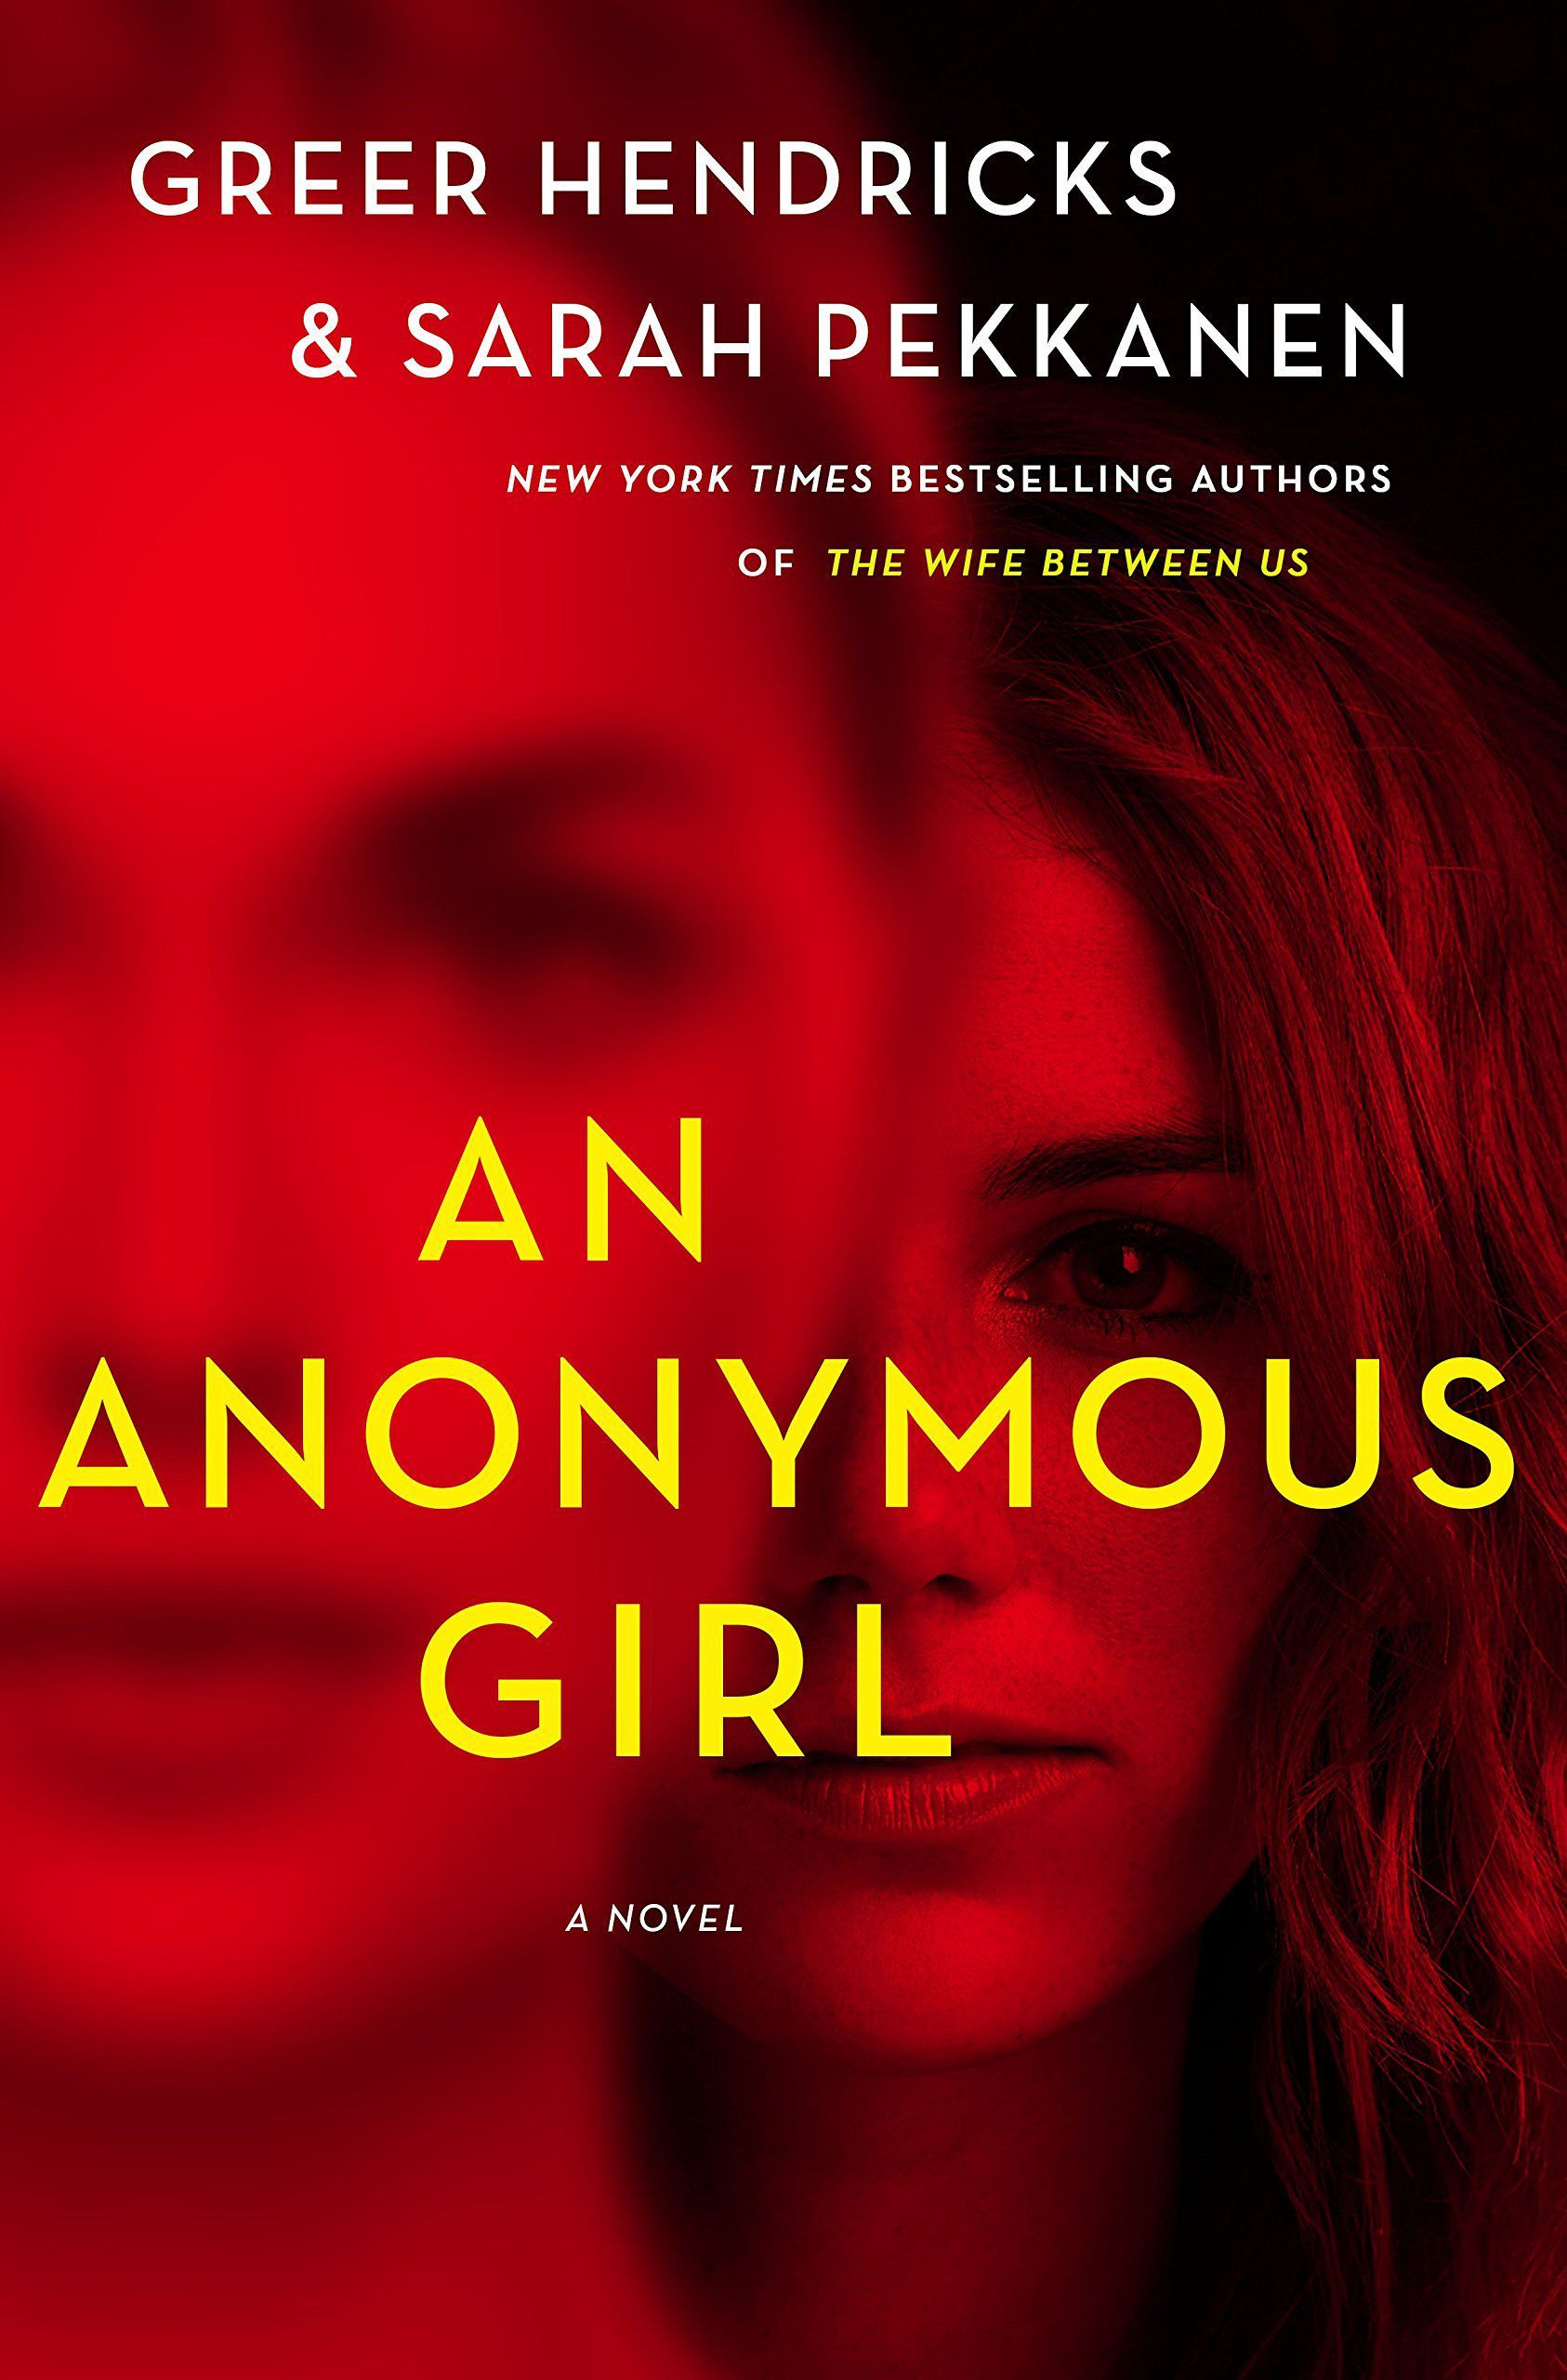 'An Anonymous Girl' by Greer Kendricks and Sarah Pekkanen